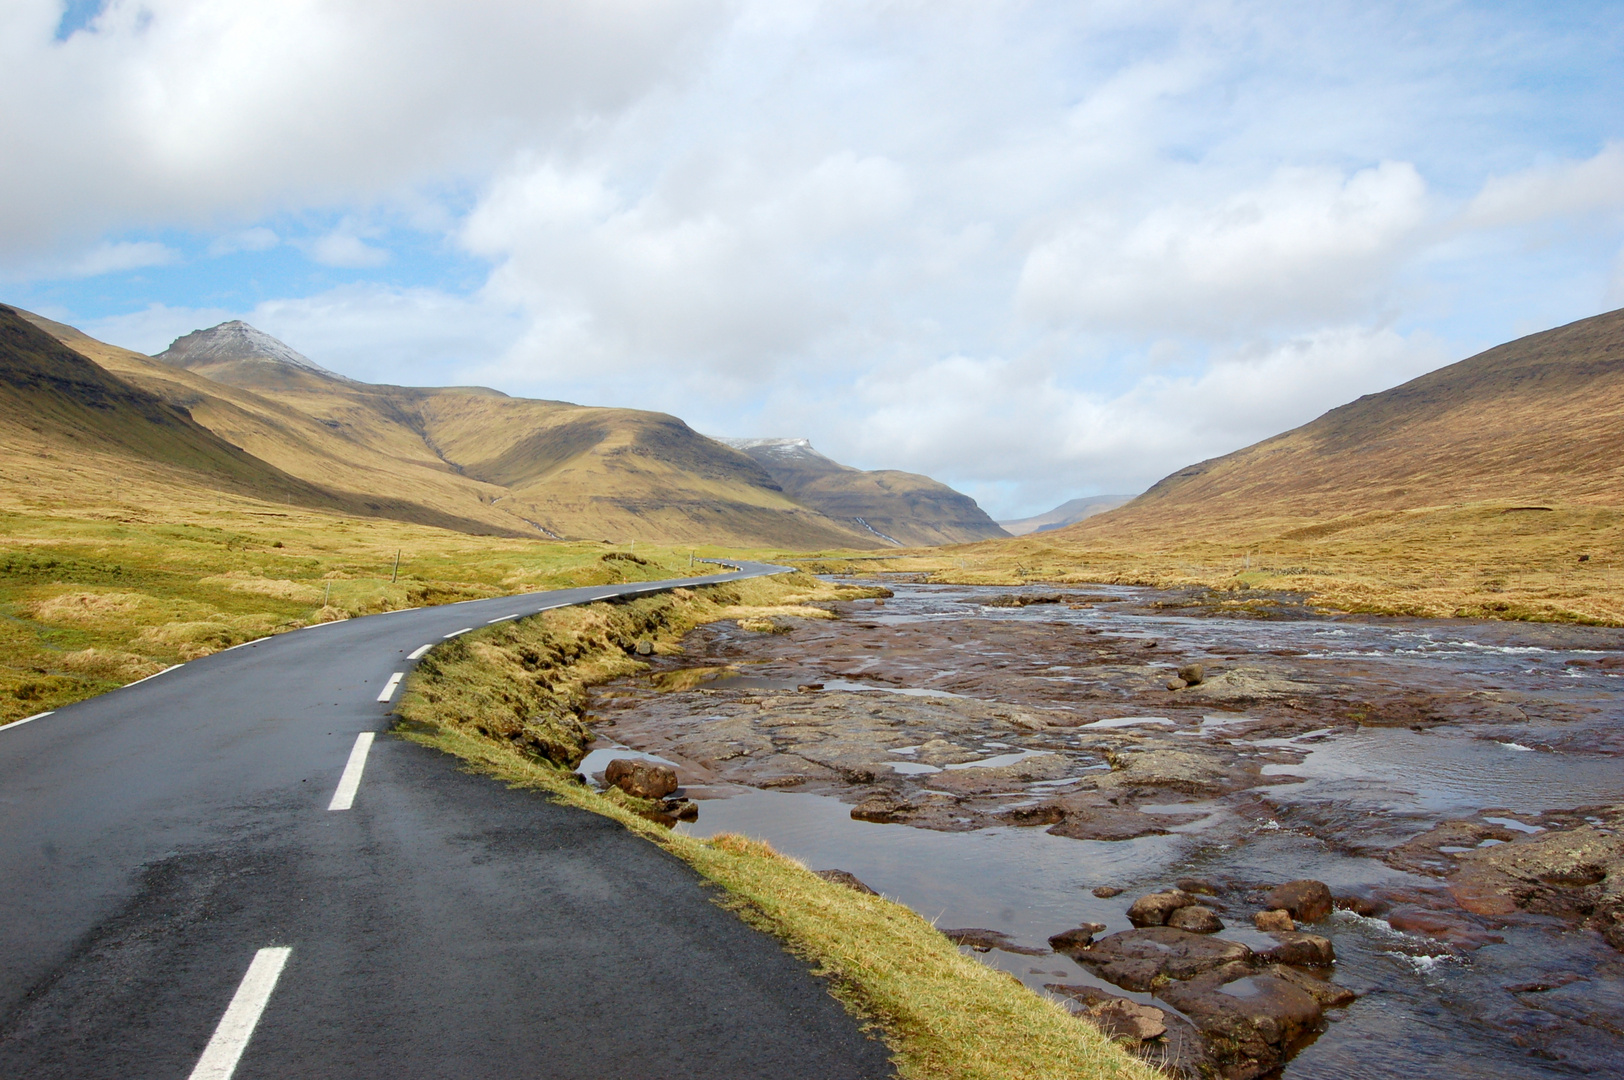 On the road to nowhere . . .